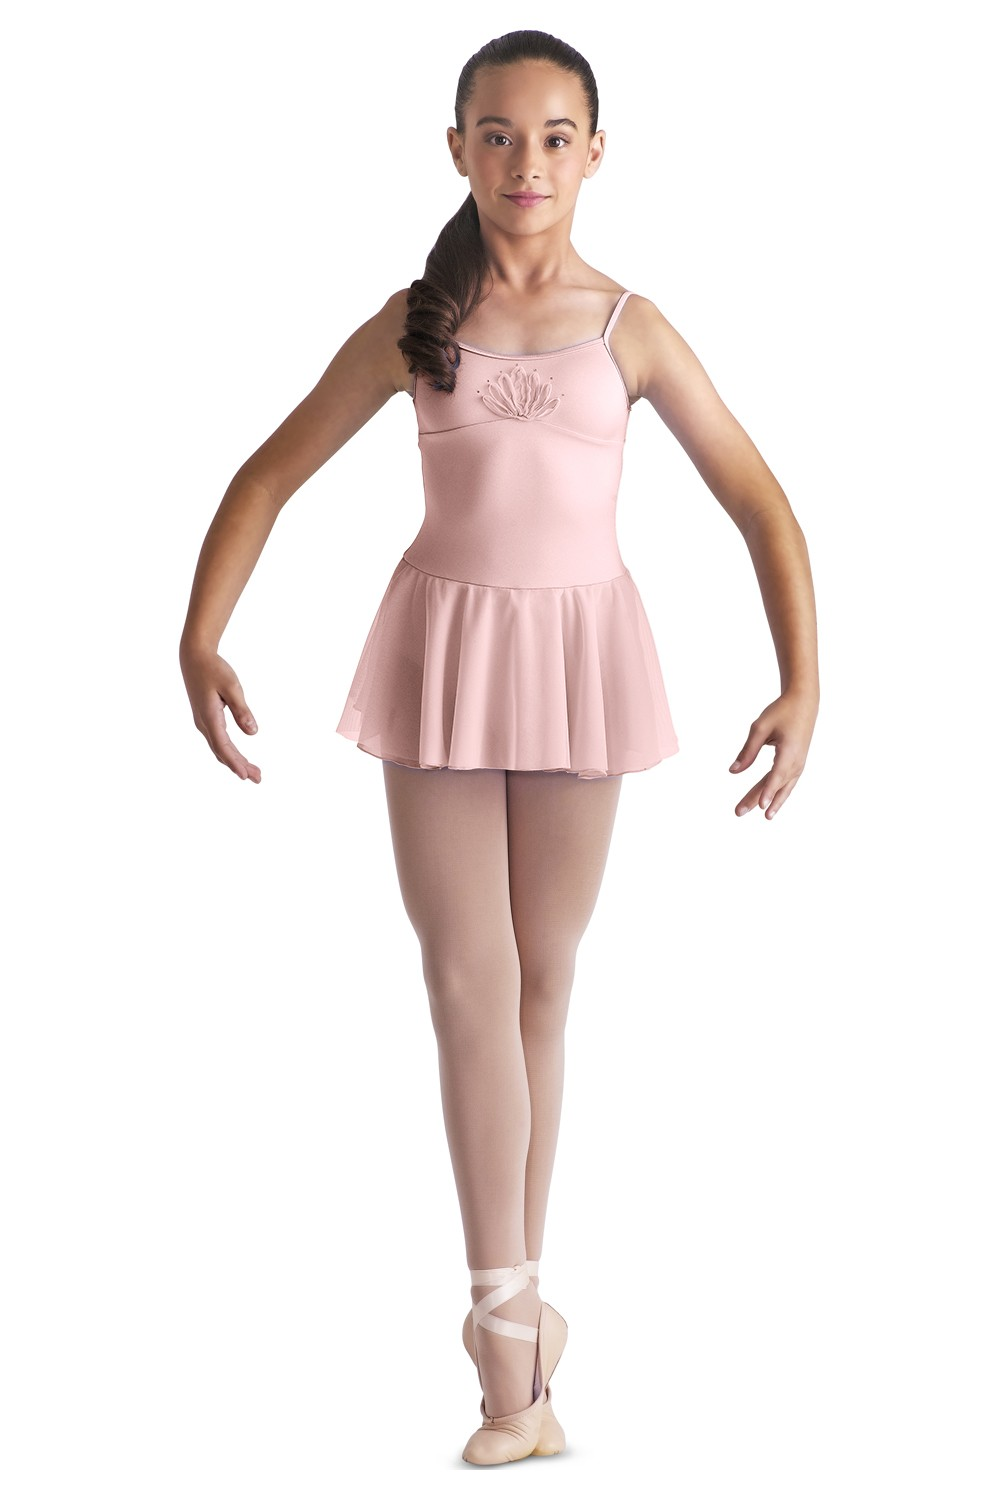 Ribbon Skirt Dress Children's Dance Leotards